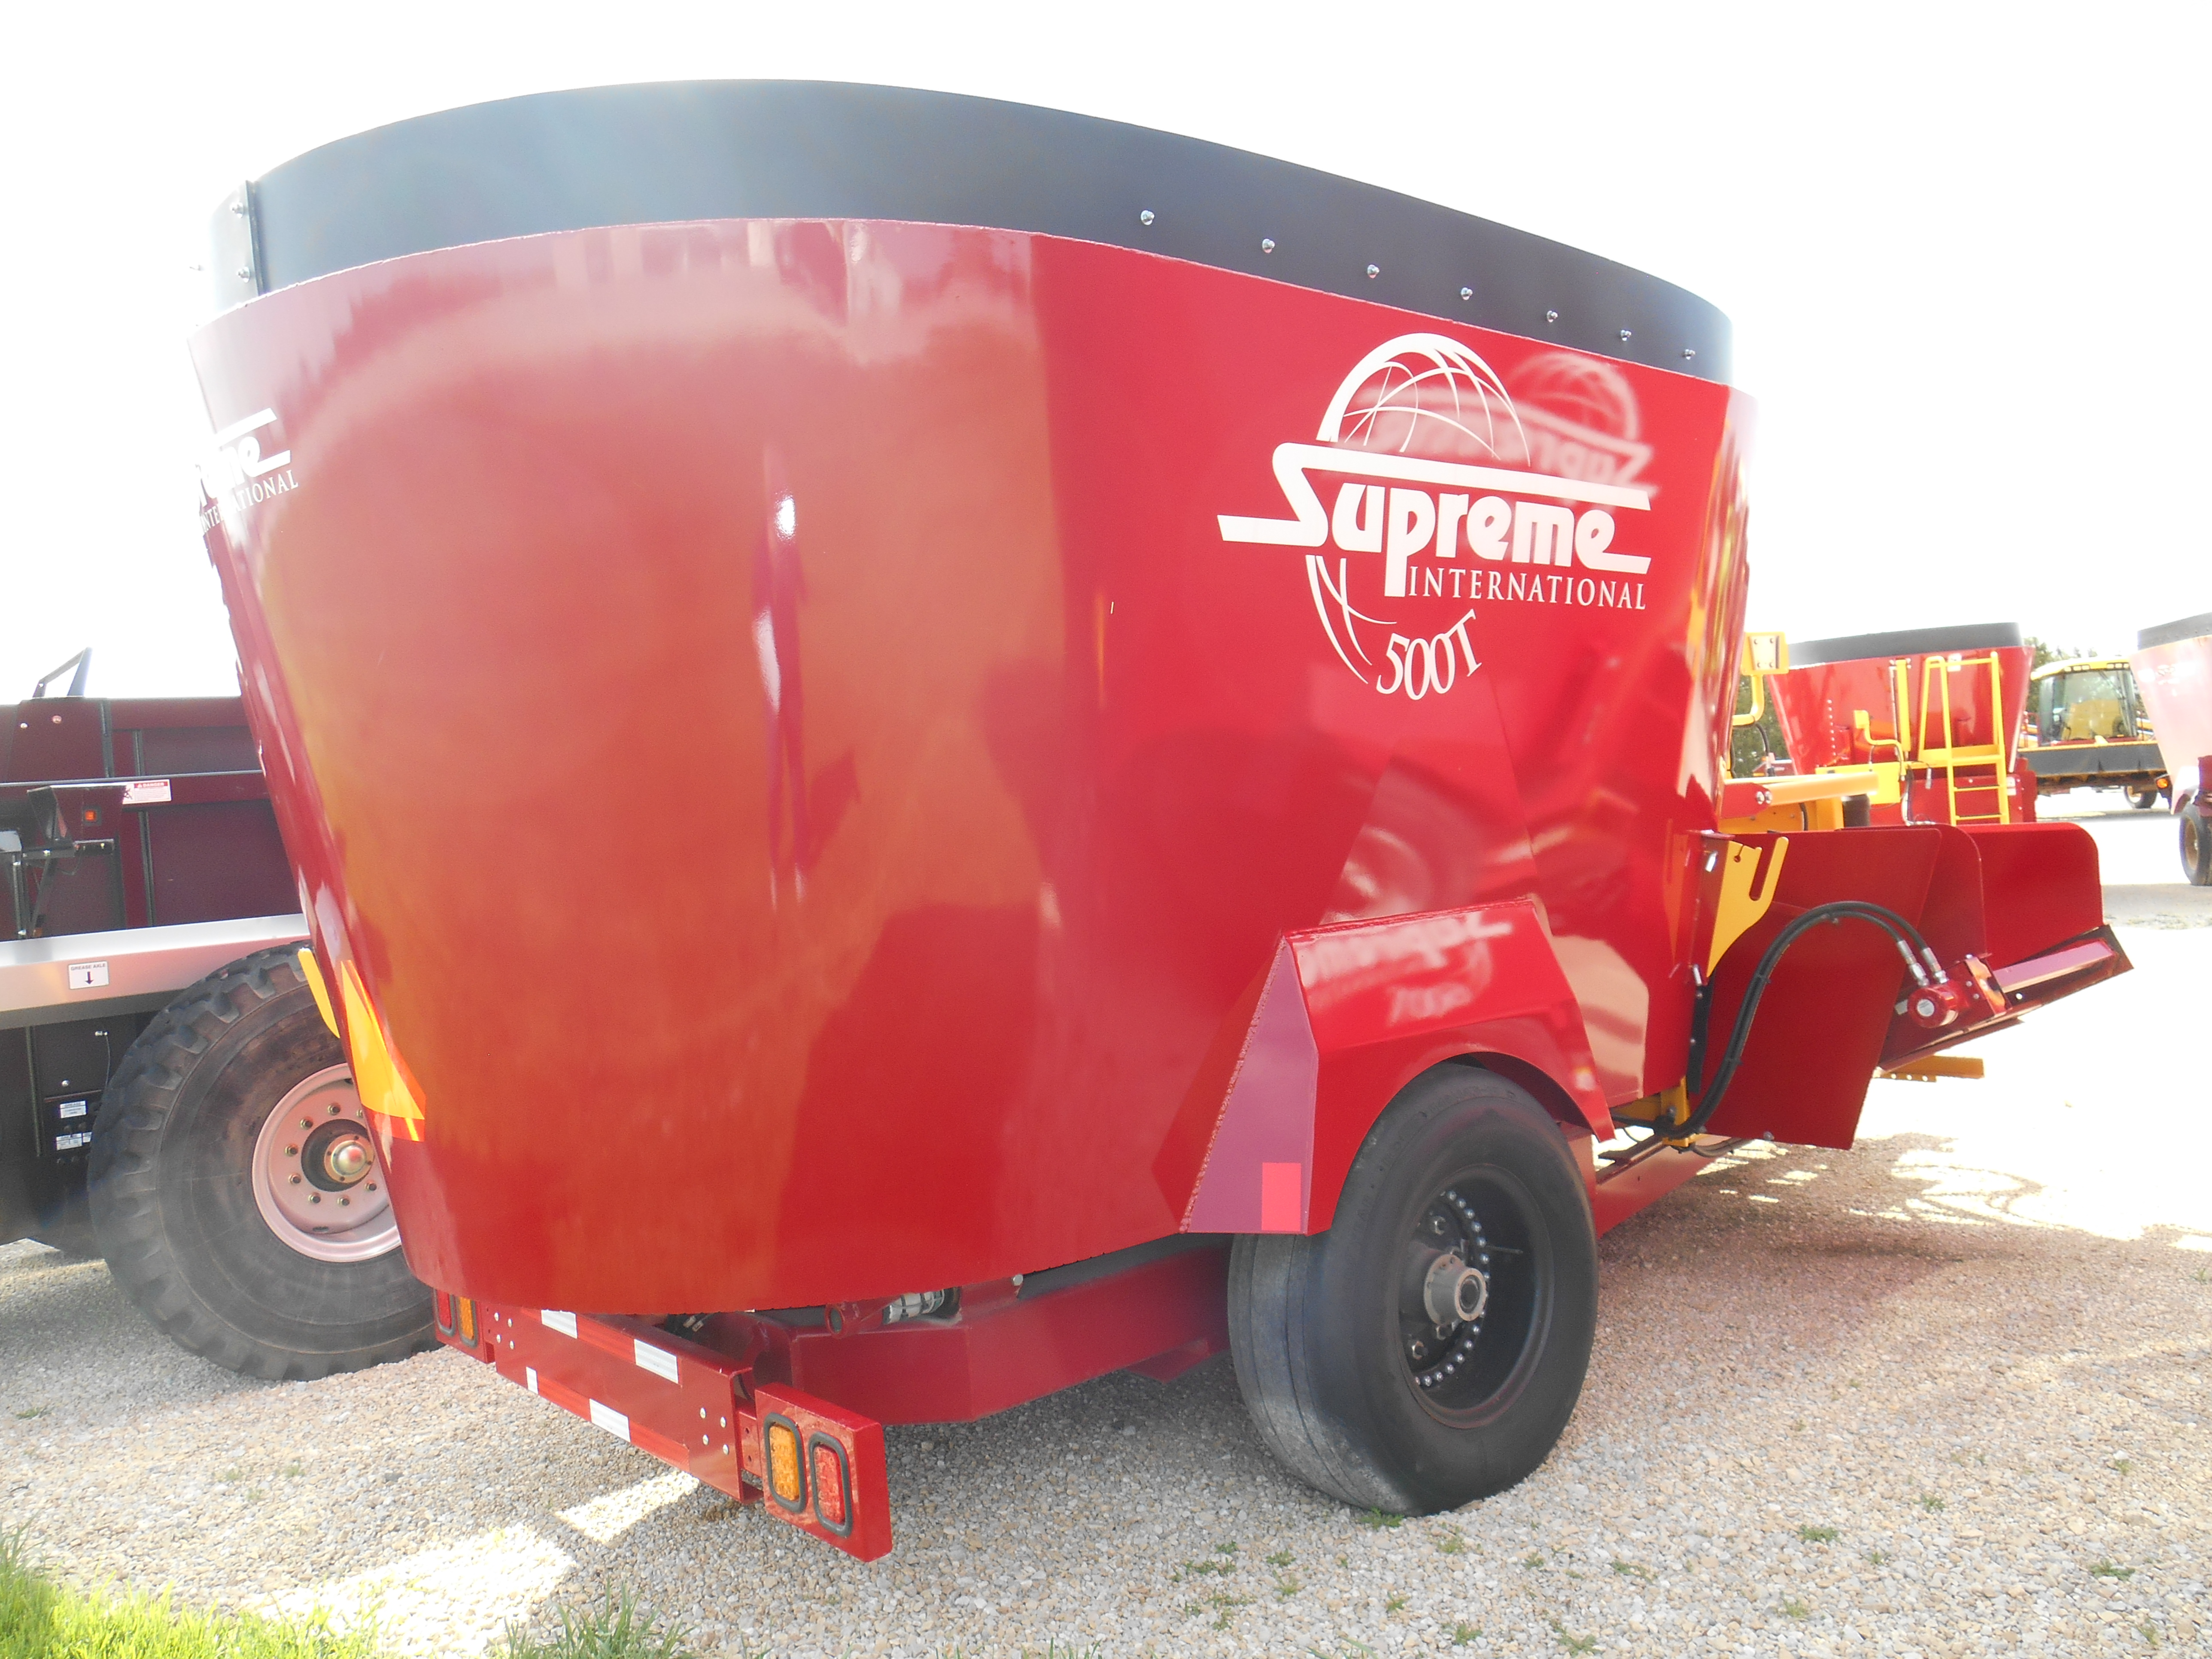 2016 Supreme International 500T Grinders and Mixer